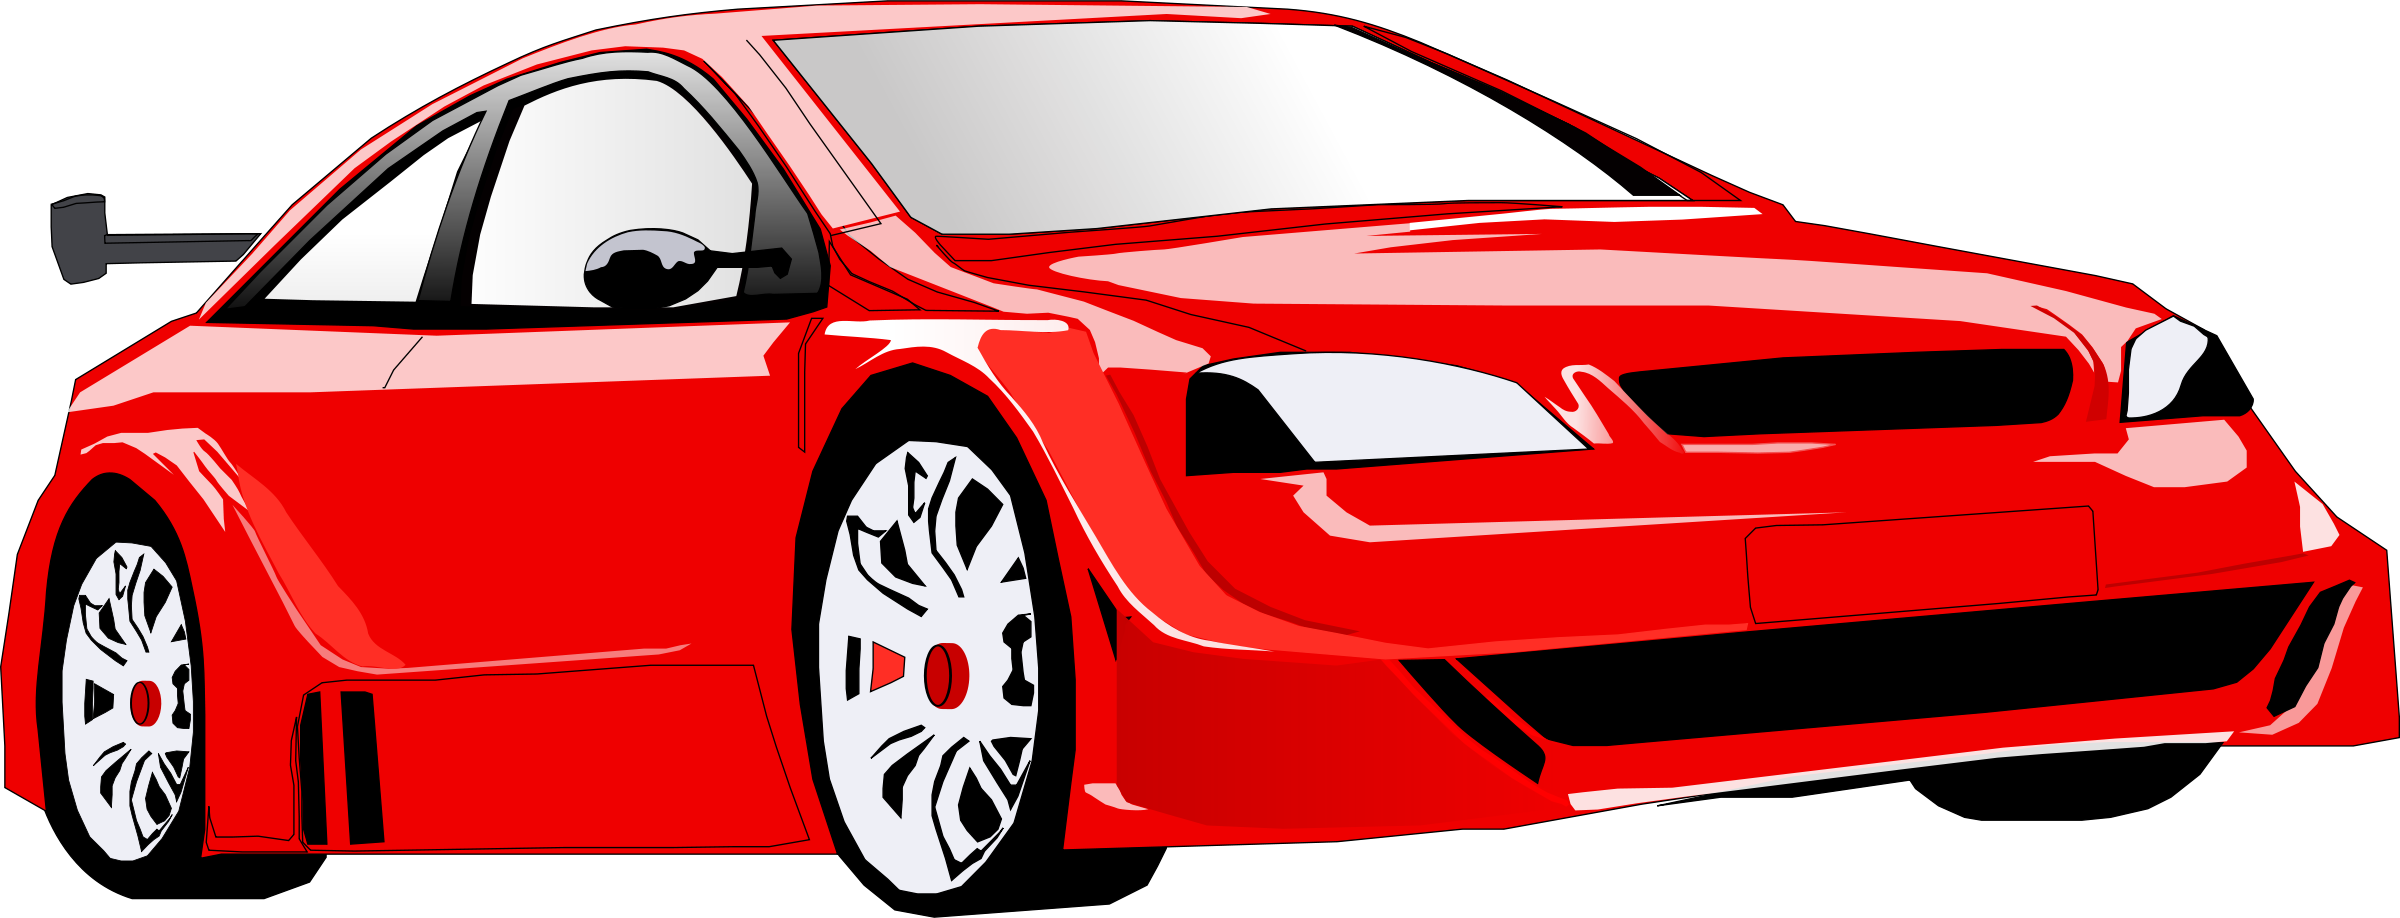 Cars car clipart free large images.